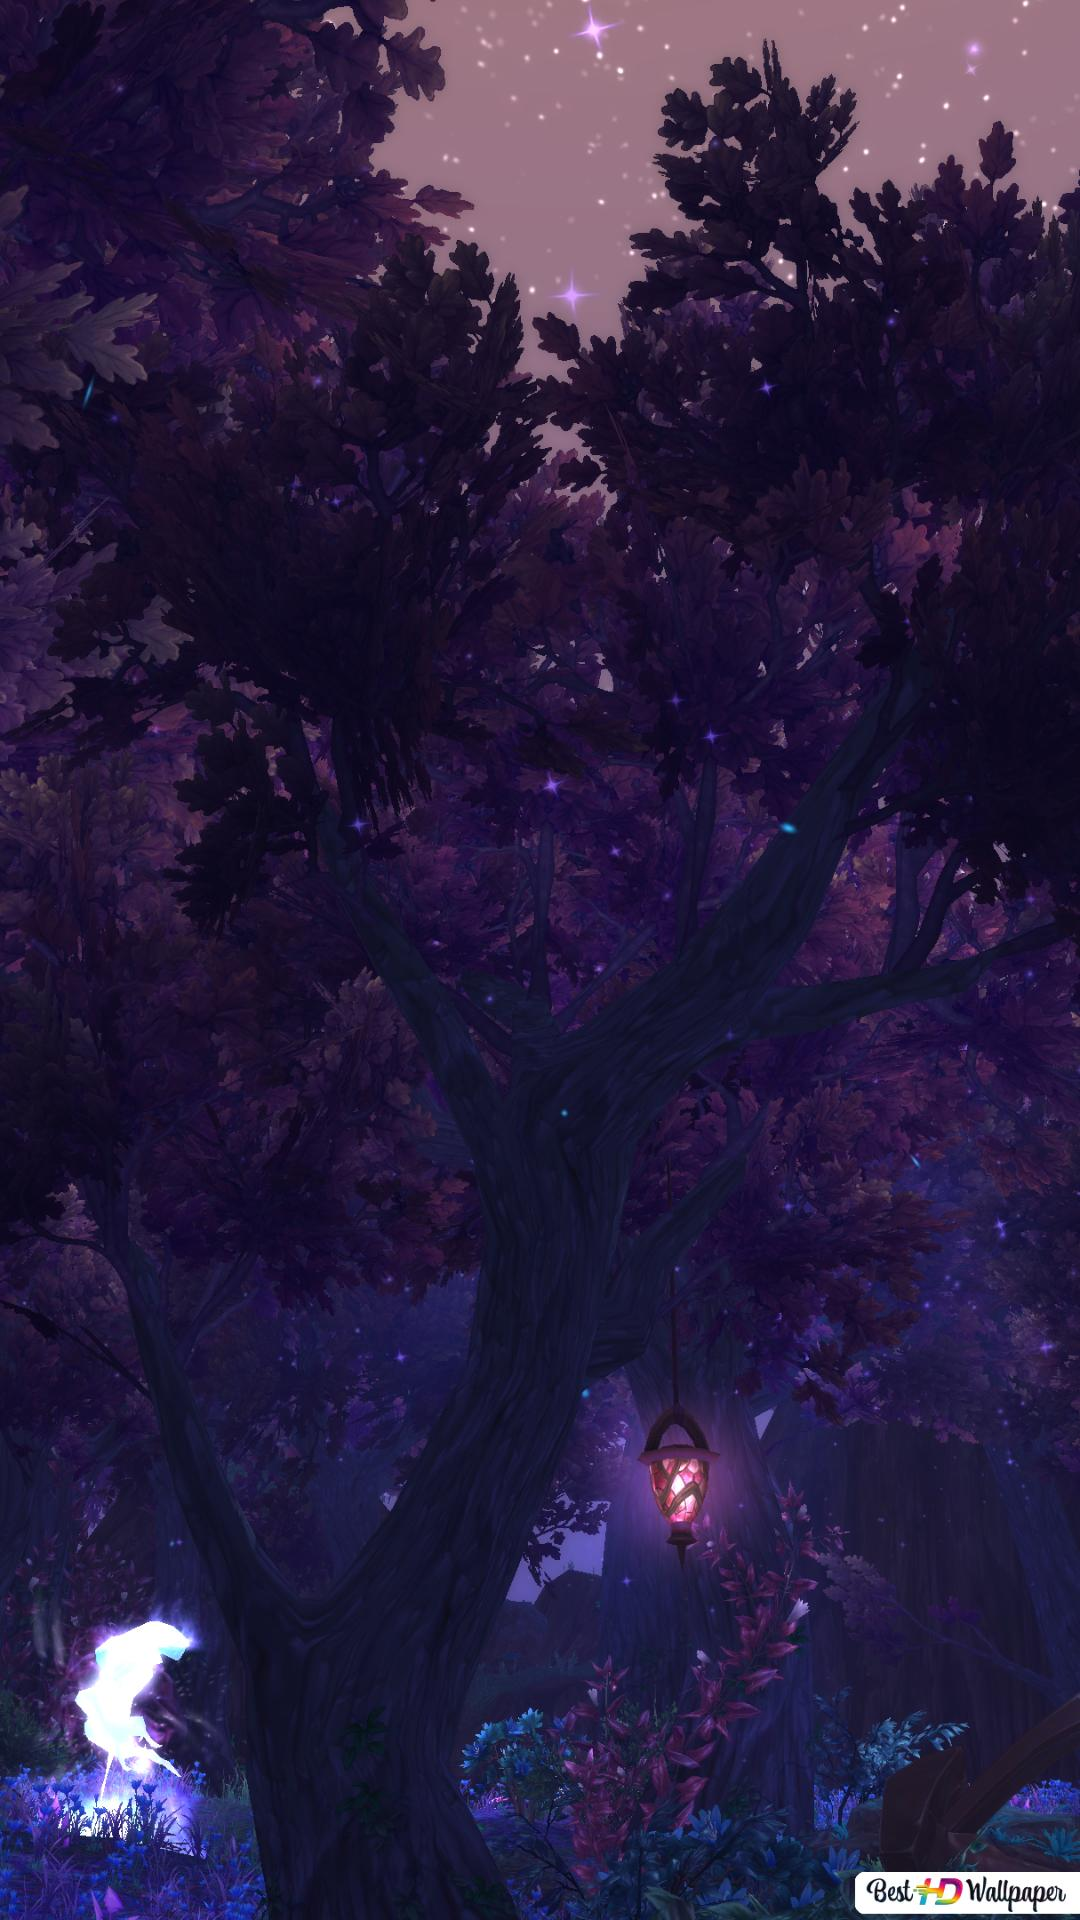 World Of Warcraft Mystic Forest Hd Wallpaper Download